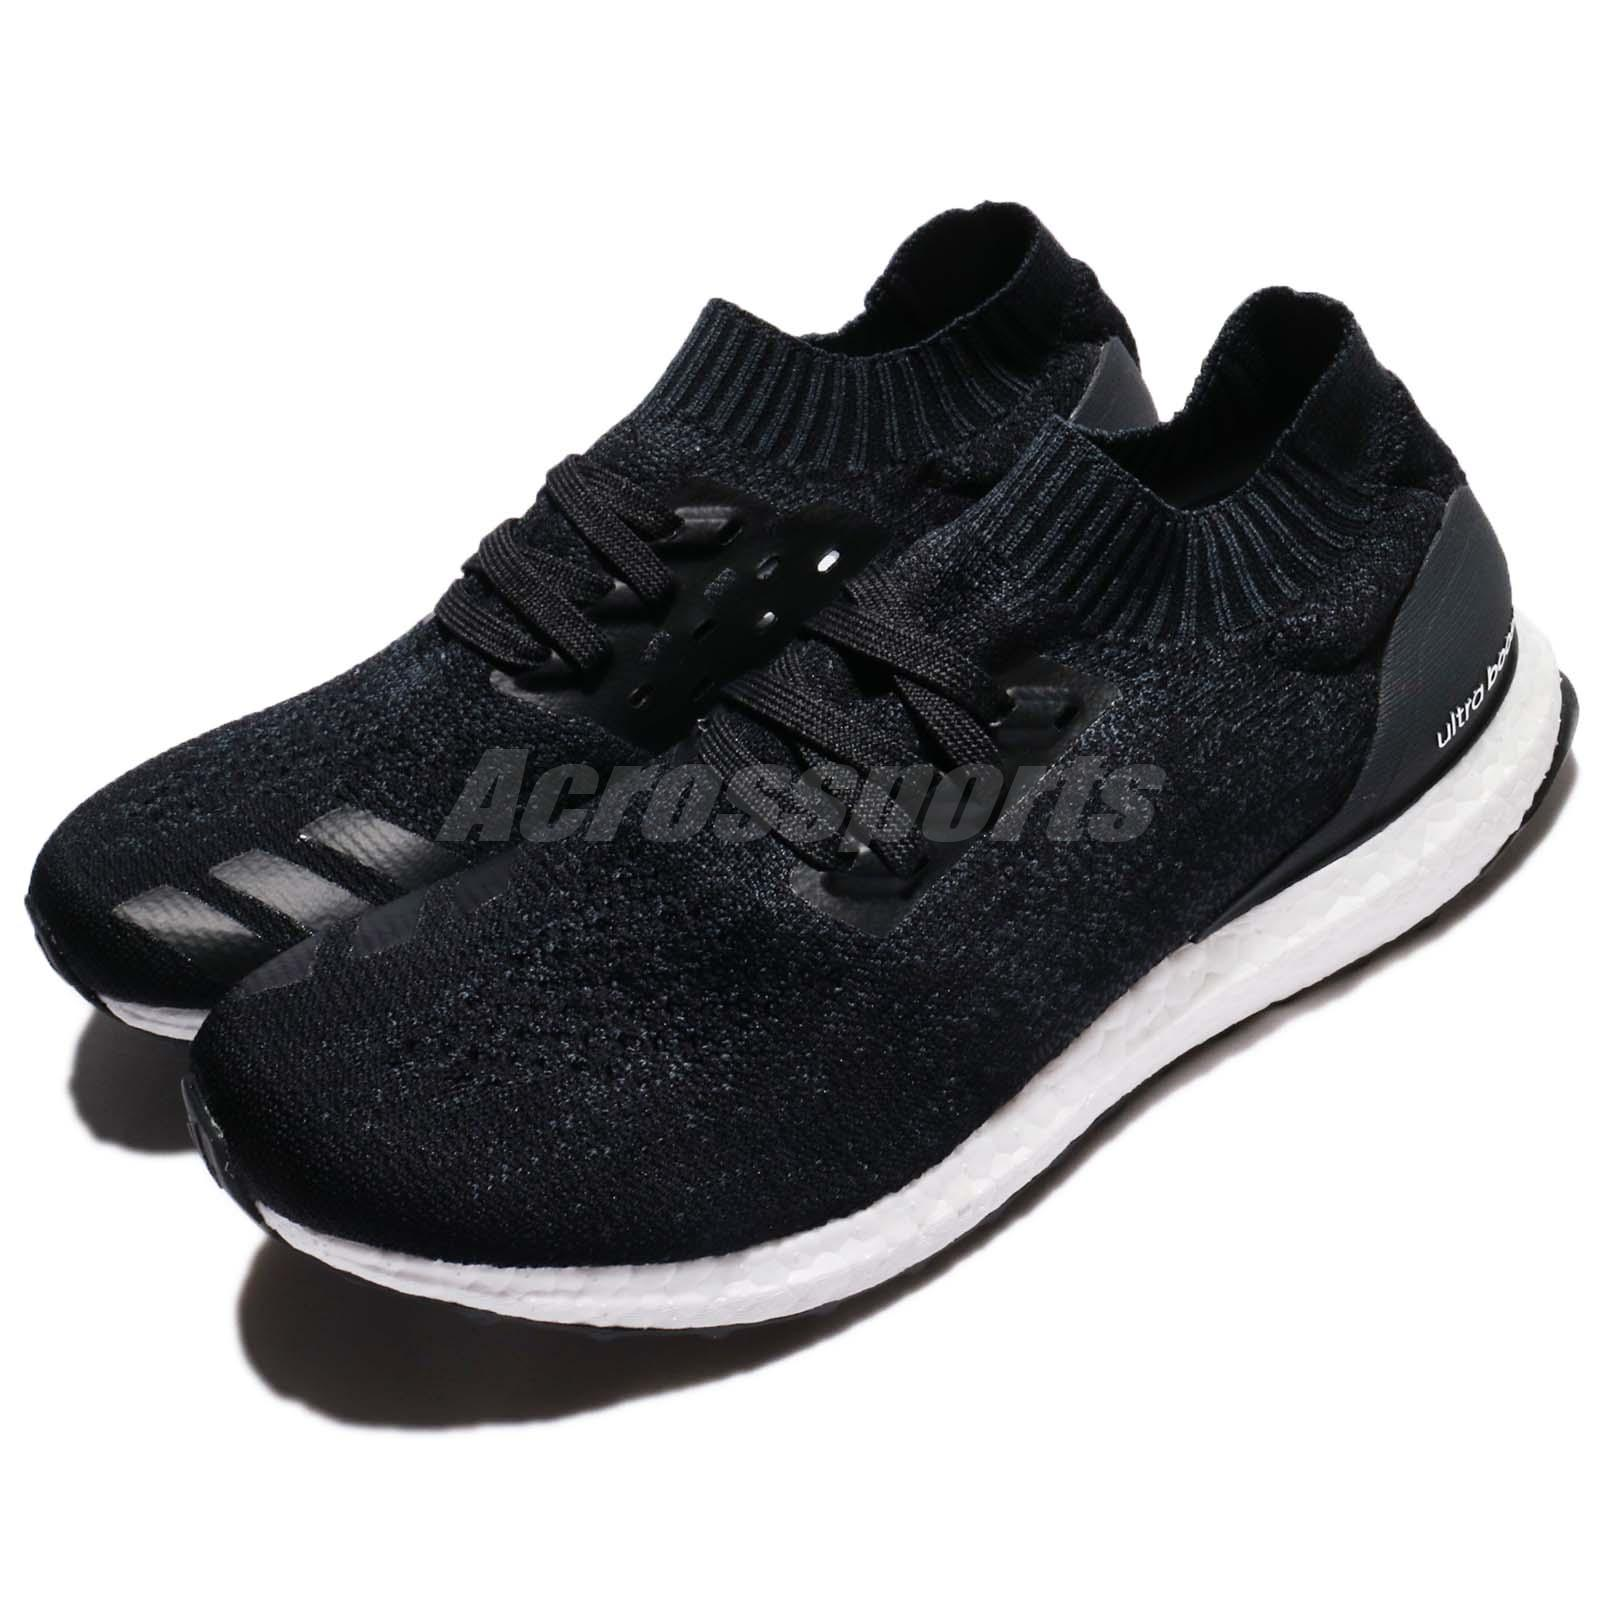 996dd0c3b Details about adidas UltraBOOST Uncaged Black White Men Running Shoes  Sneakers Trainers DA9164